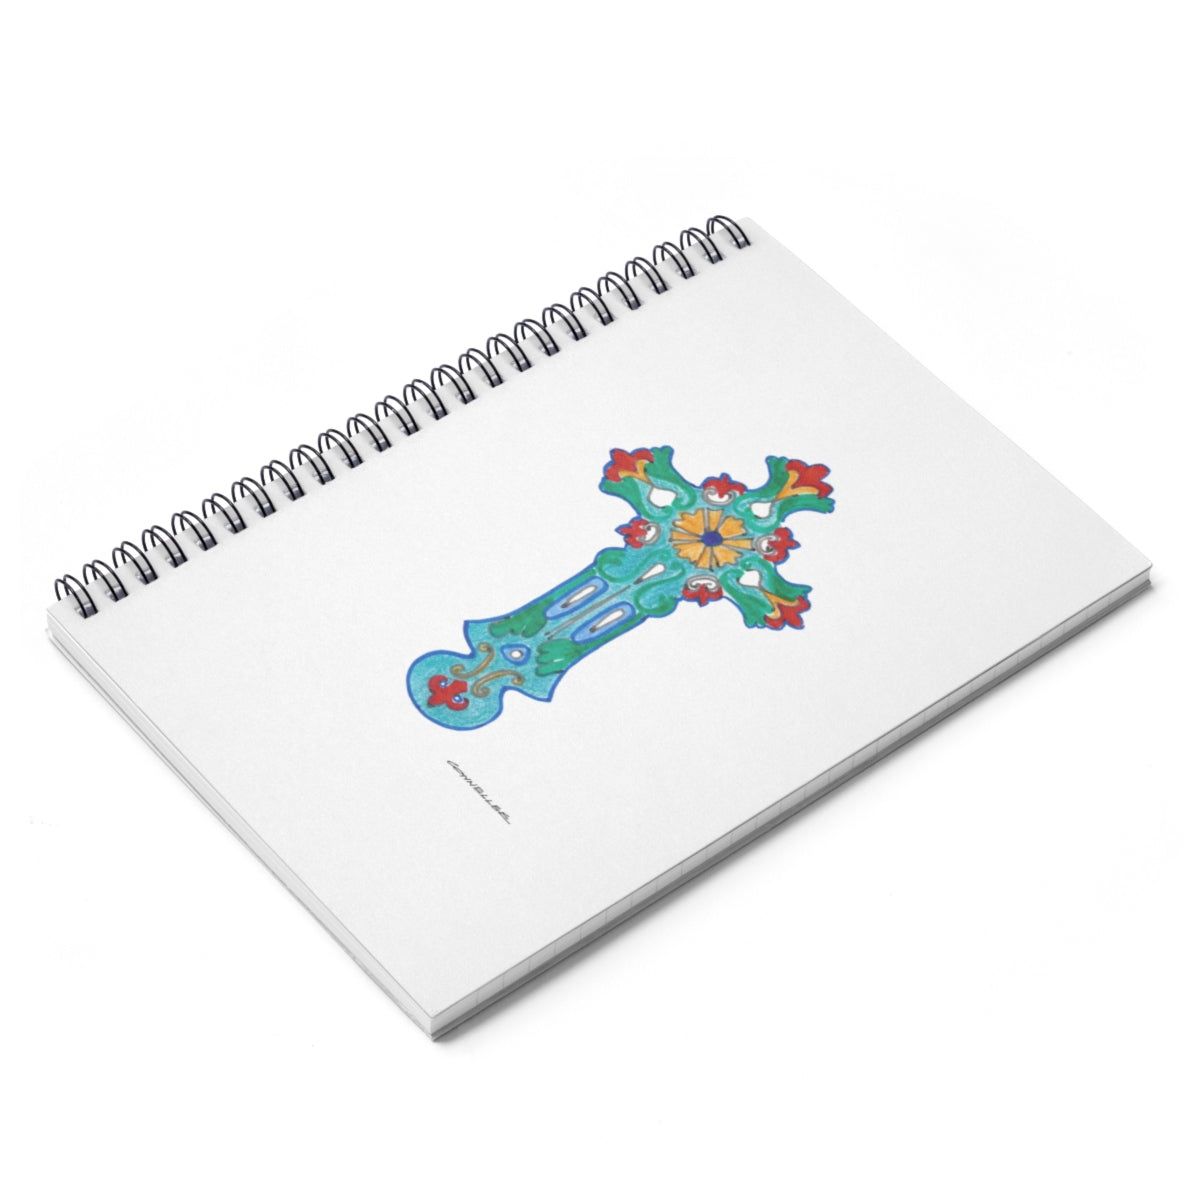 Turquoise Cross Spiral Notebook - Ruled Line - Falling Leaf Card Co.